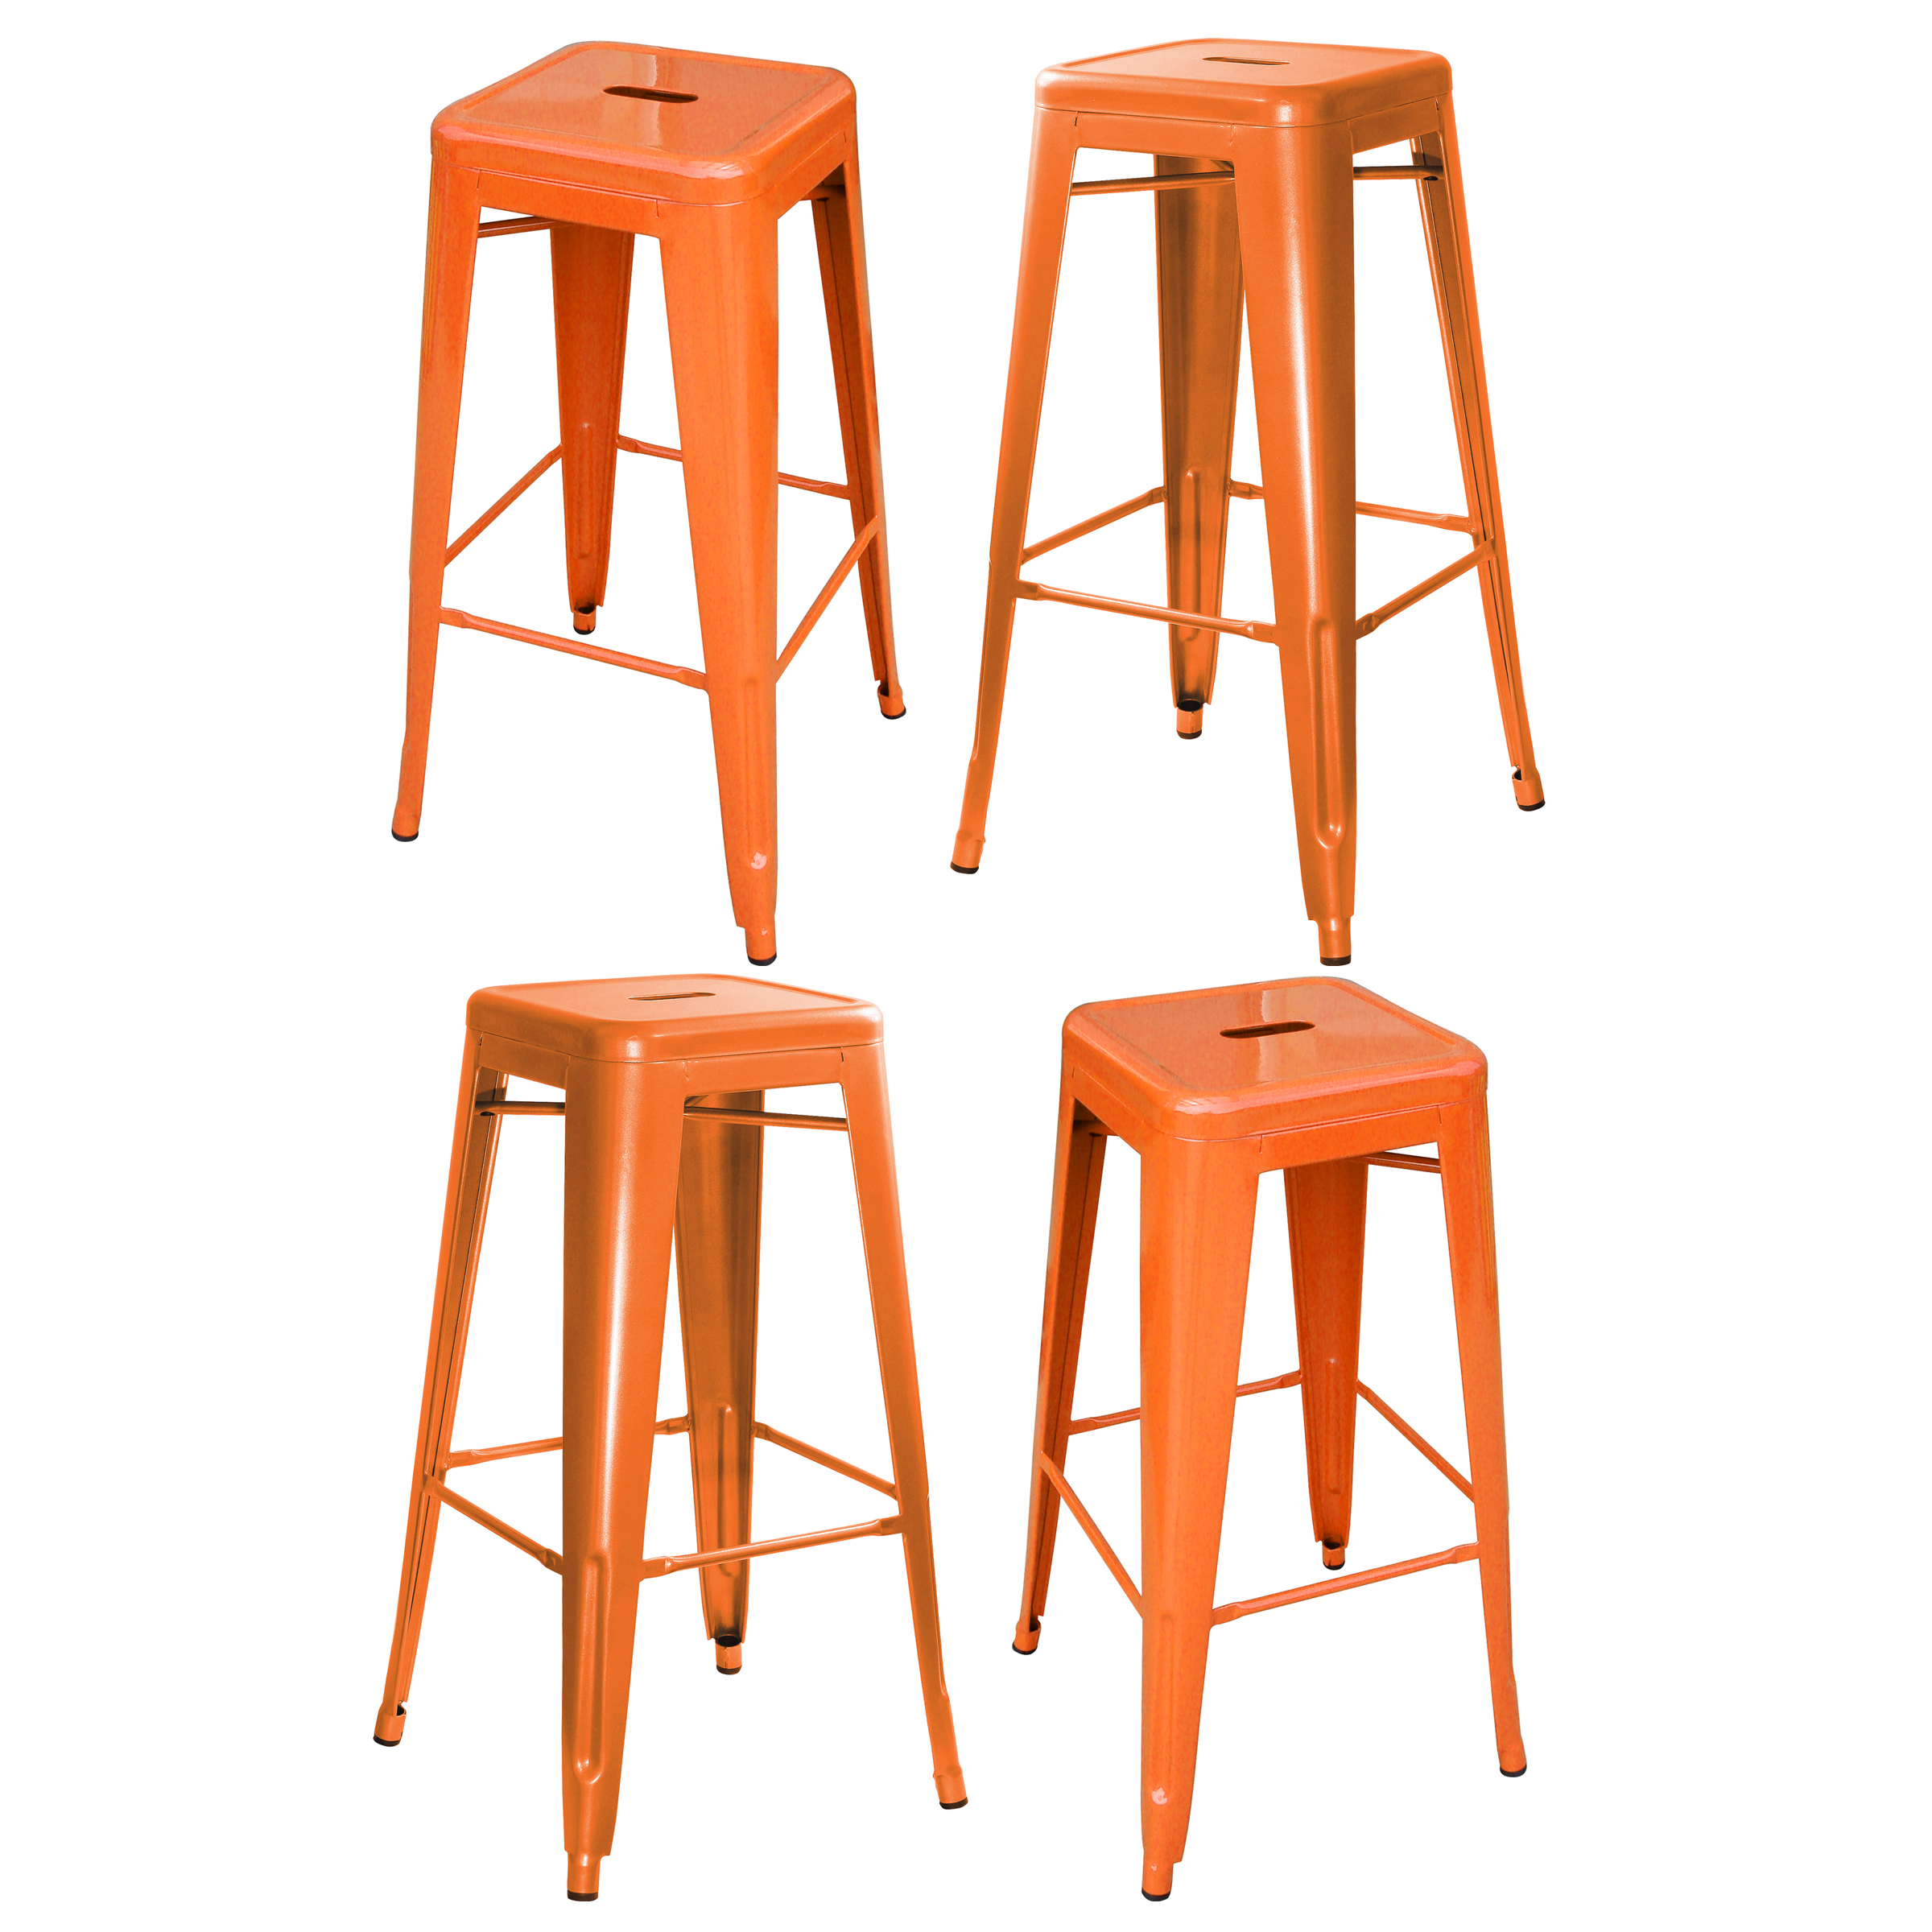 "AmeriHome Loft Metal 30"" Bar Stool, Gun Metal, Set of 4"